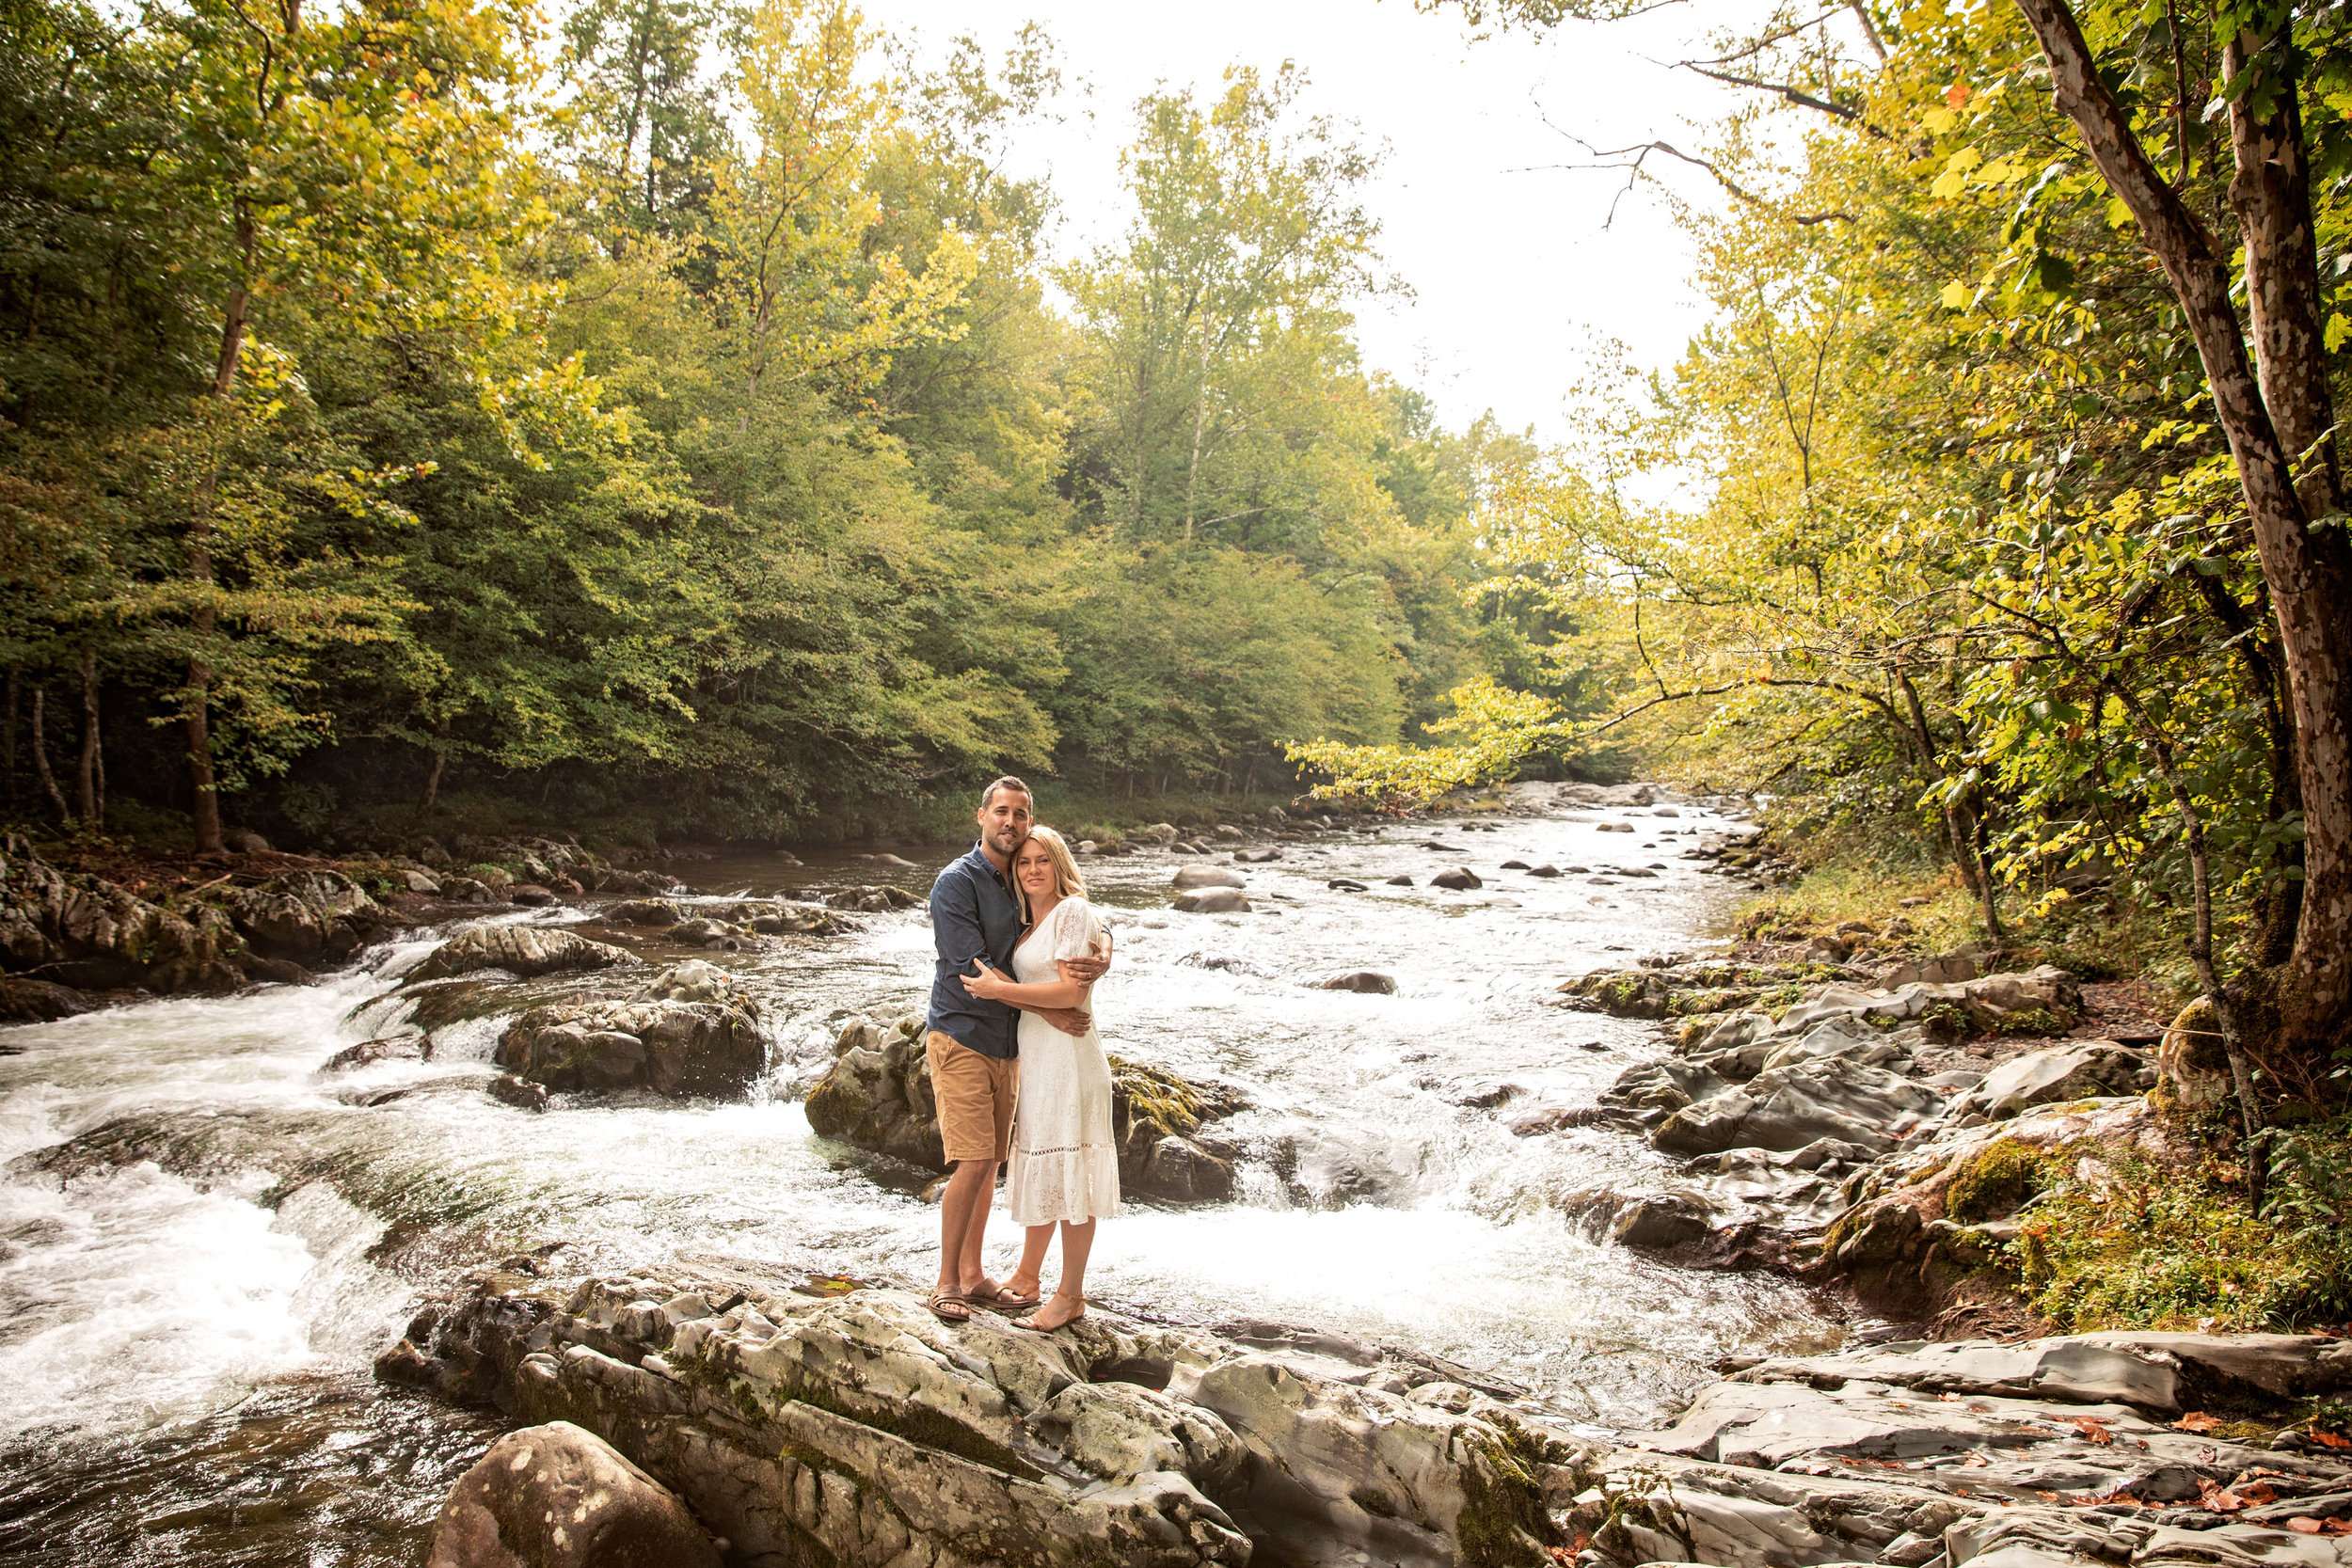 gatlinburg-tn-wedding-officiant-and-photographer-simply-eloped.jpg